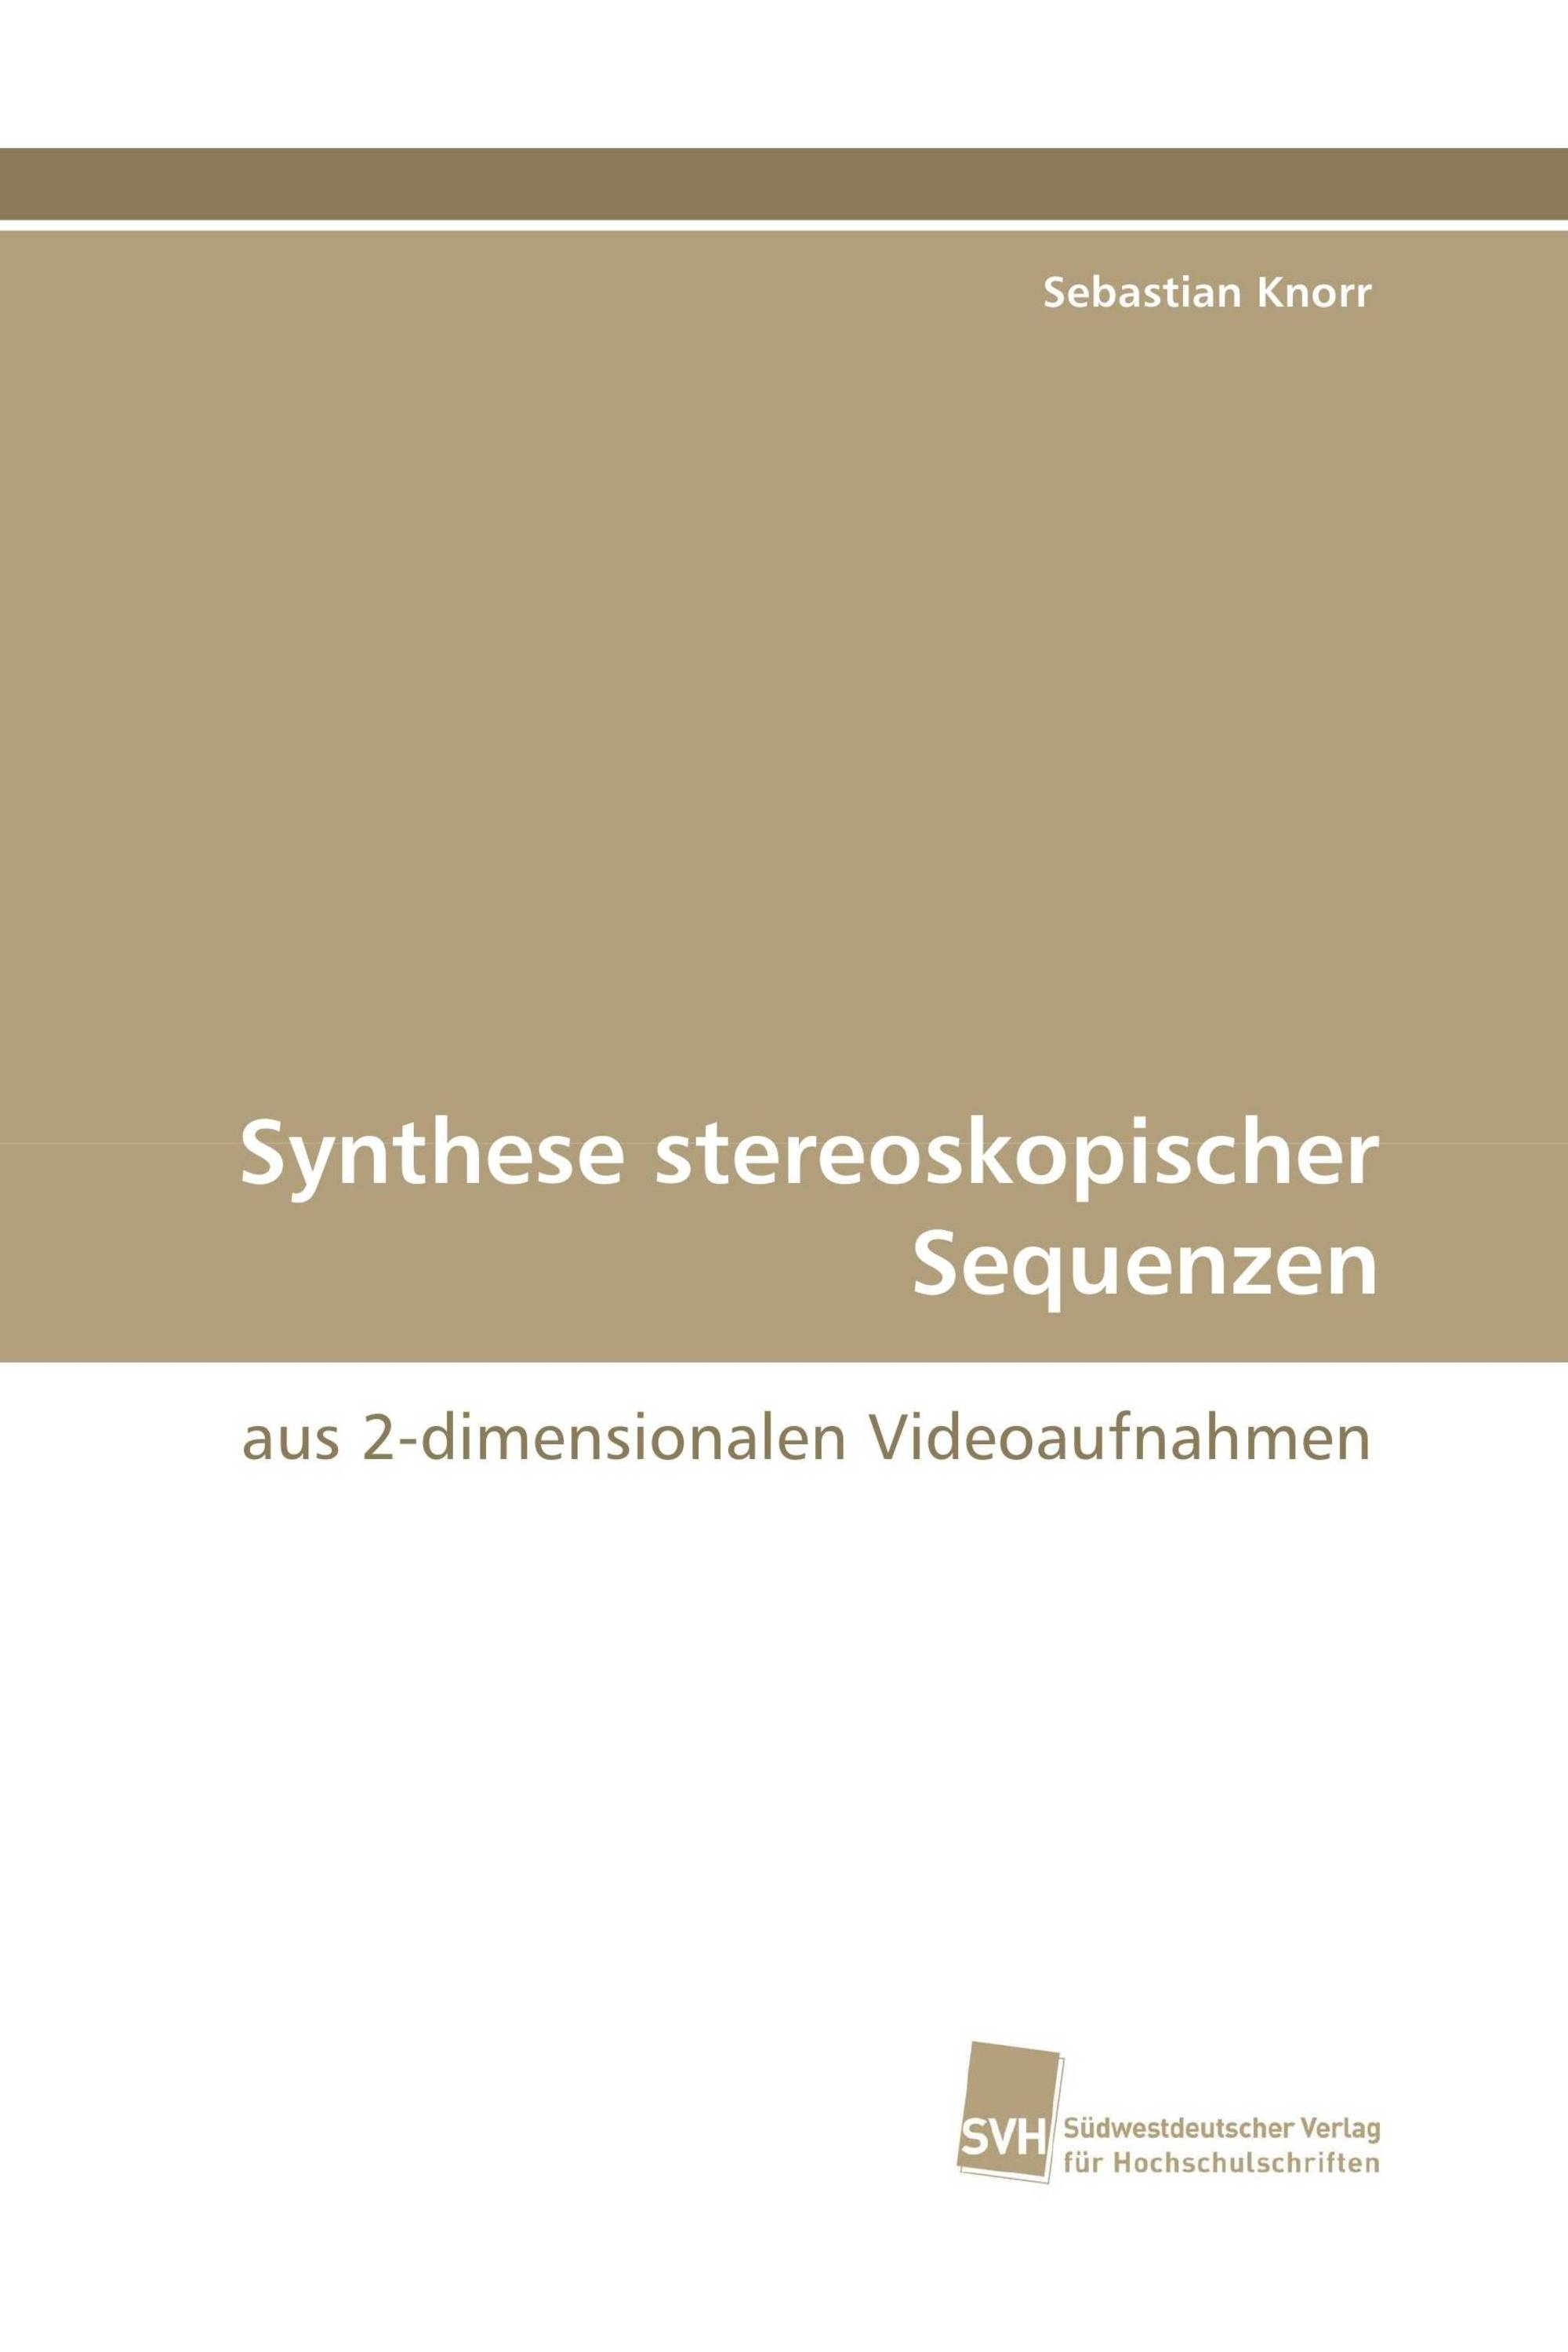 Synthese stereoskopischer Sequenzen